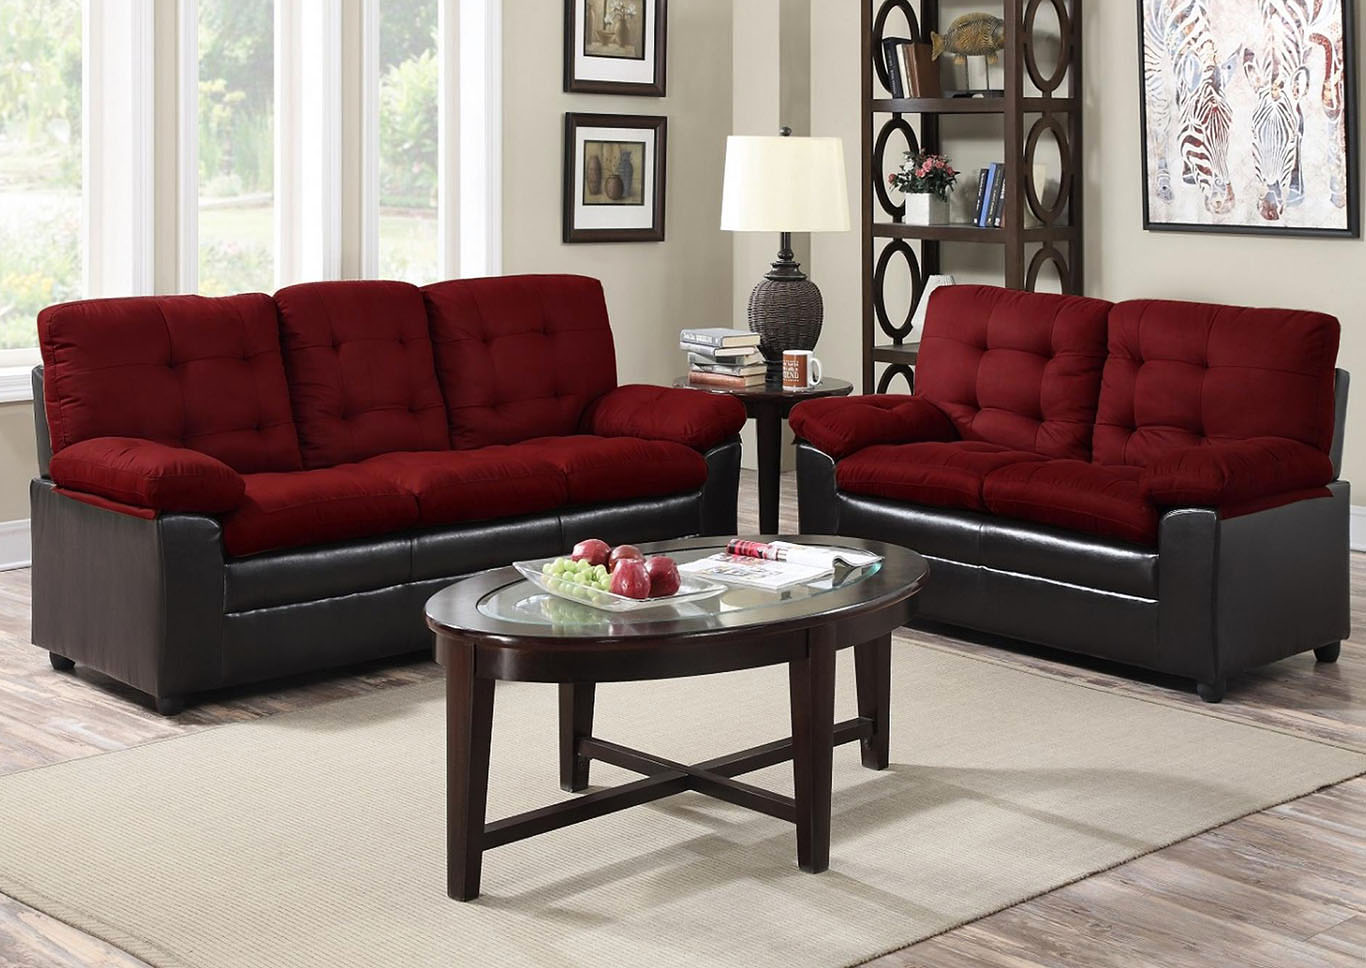 614343 Burgundy Microfiber Sofa and Loveseat